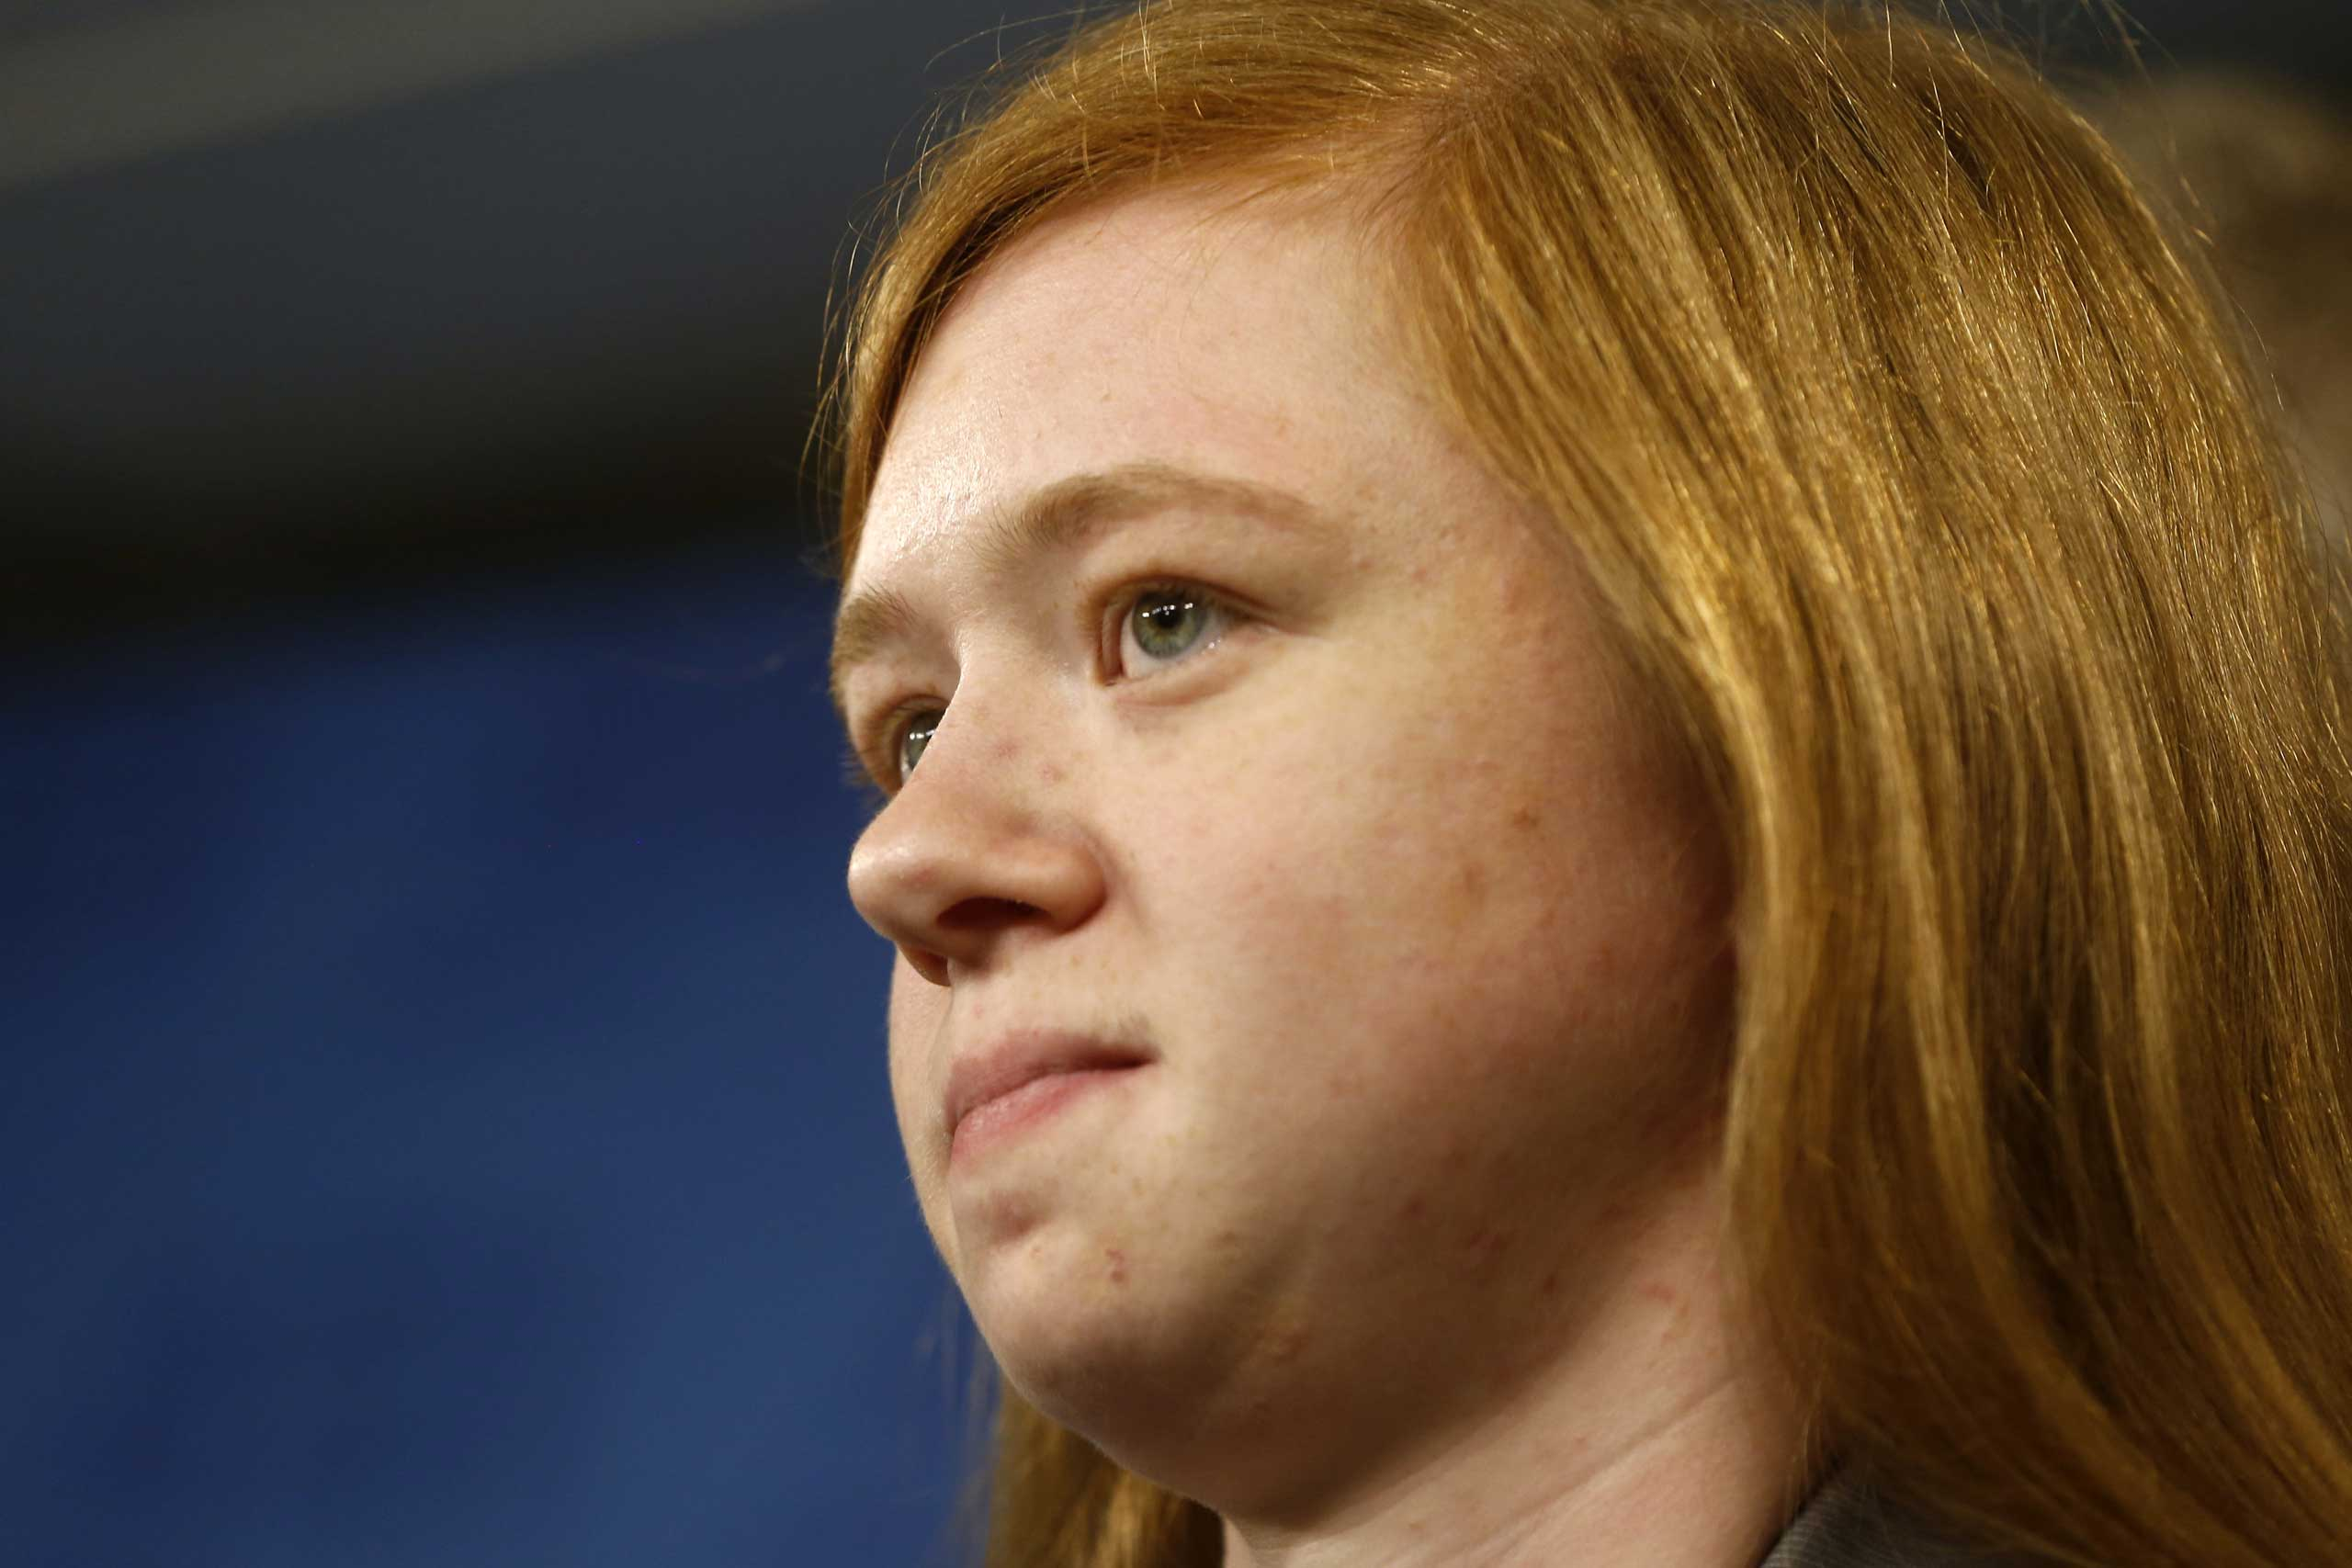 Abigail Fisher, who sued the University of Texas when she was not offered a spot at the university's flagship Austin campus in 2008.